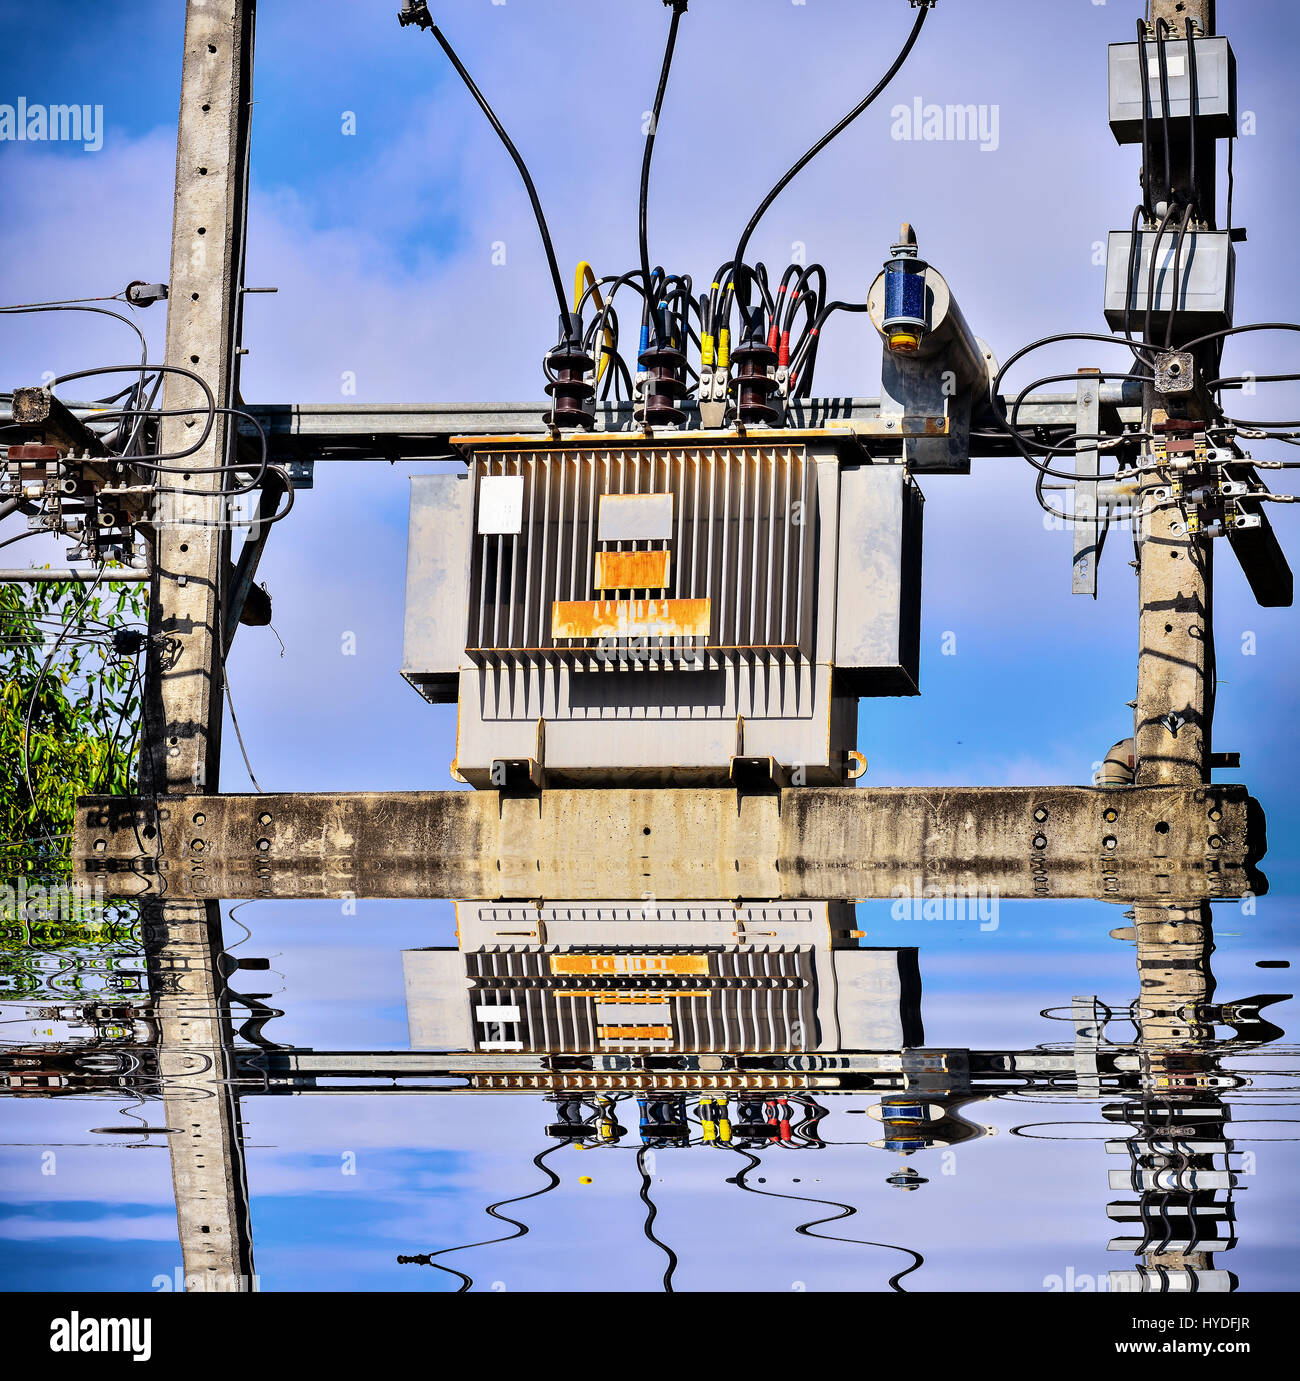 High voltage transformer on high power station with reflection Stock Photo